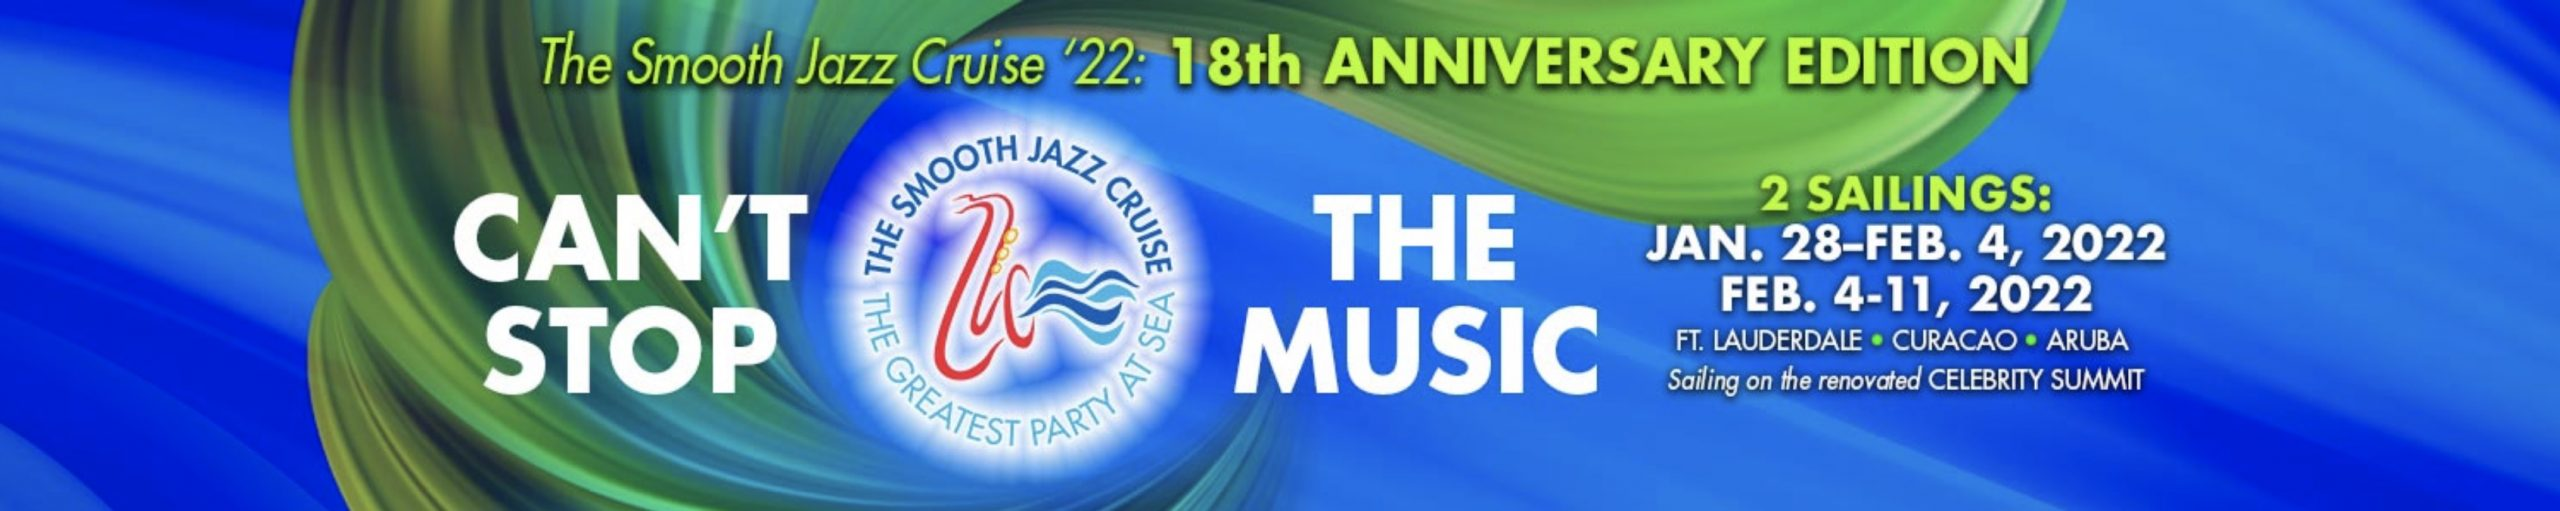 The Smooth Jazz Cruise 2022 18th Anniversary Edition